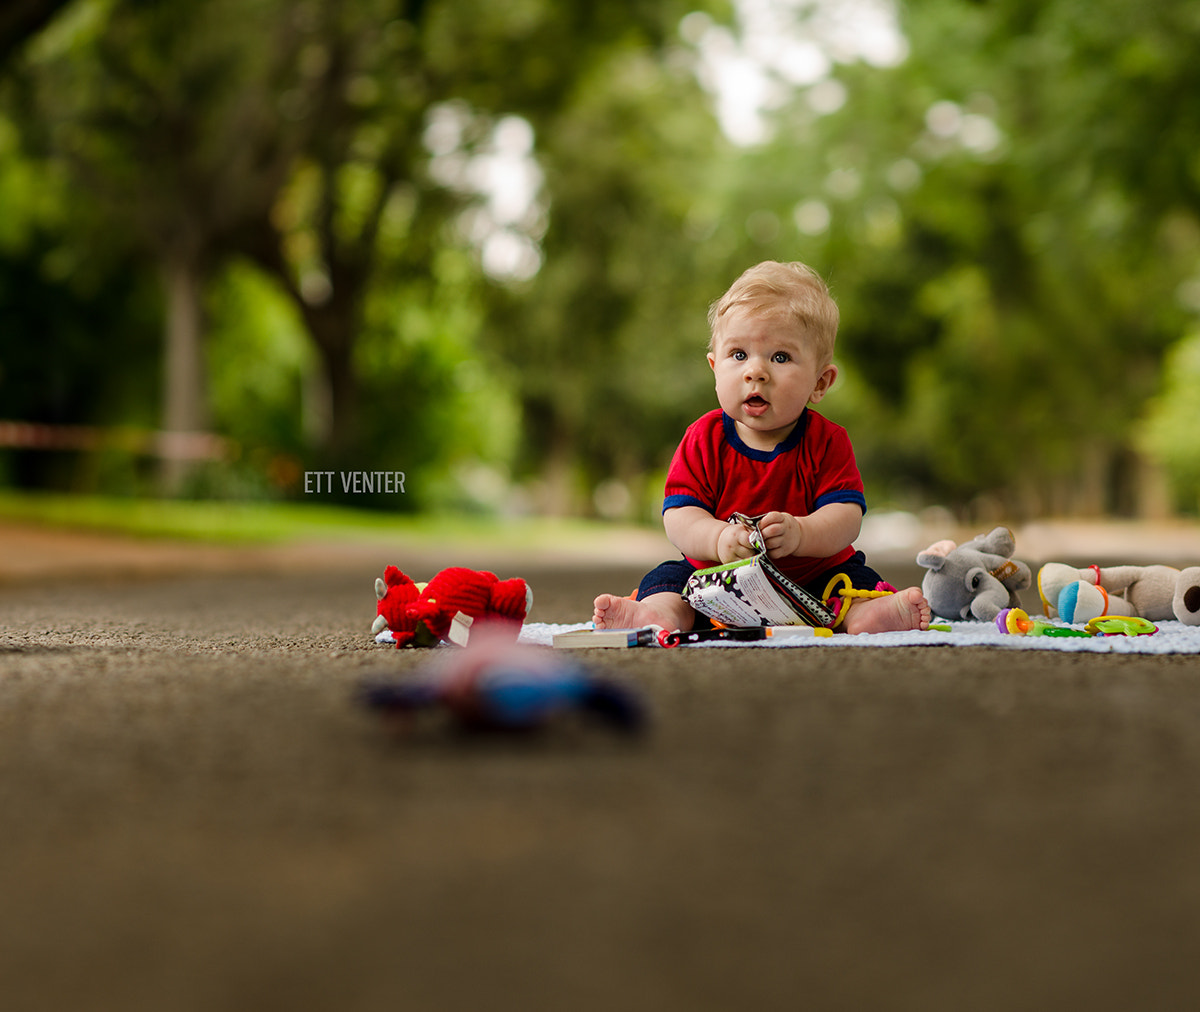 Photograph Playing in the Street by Ett Venter on 500px